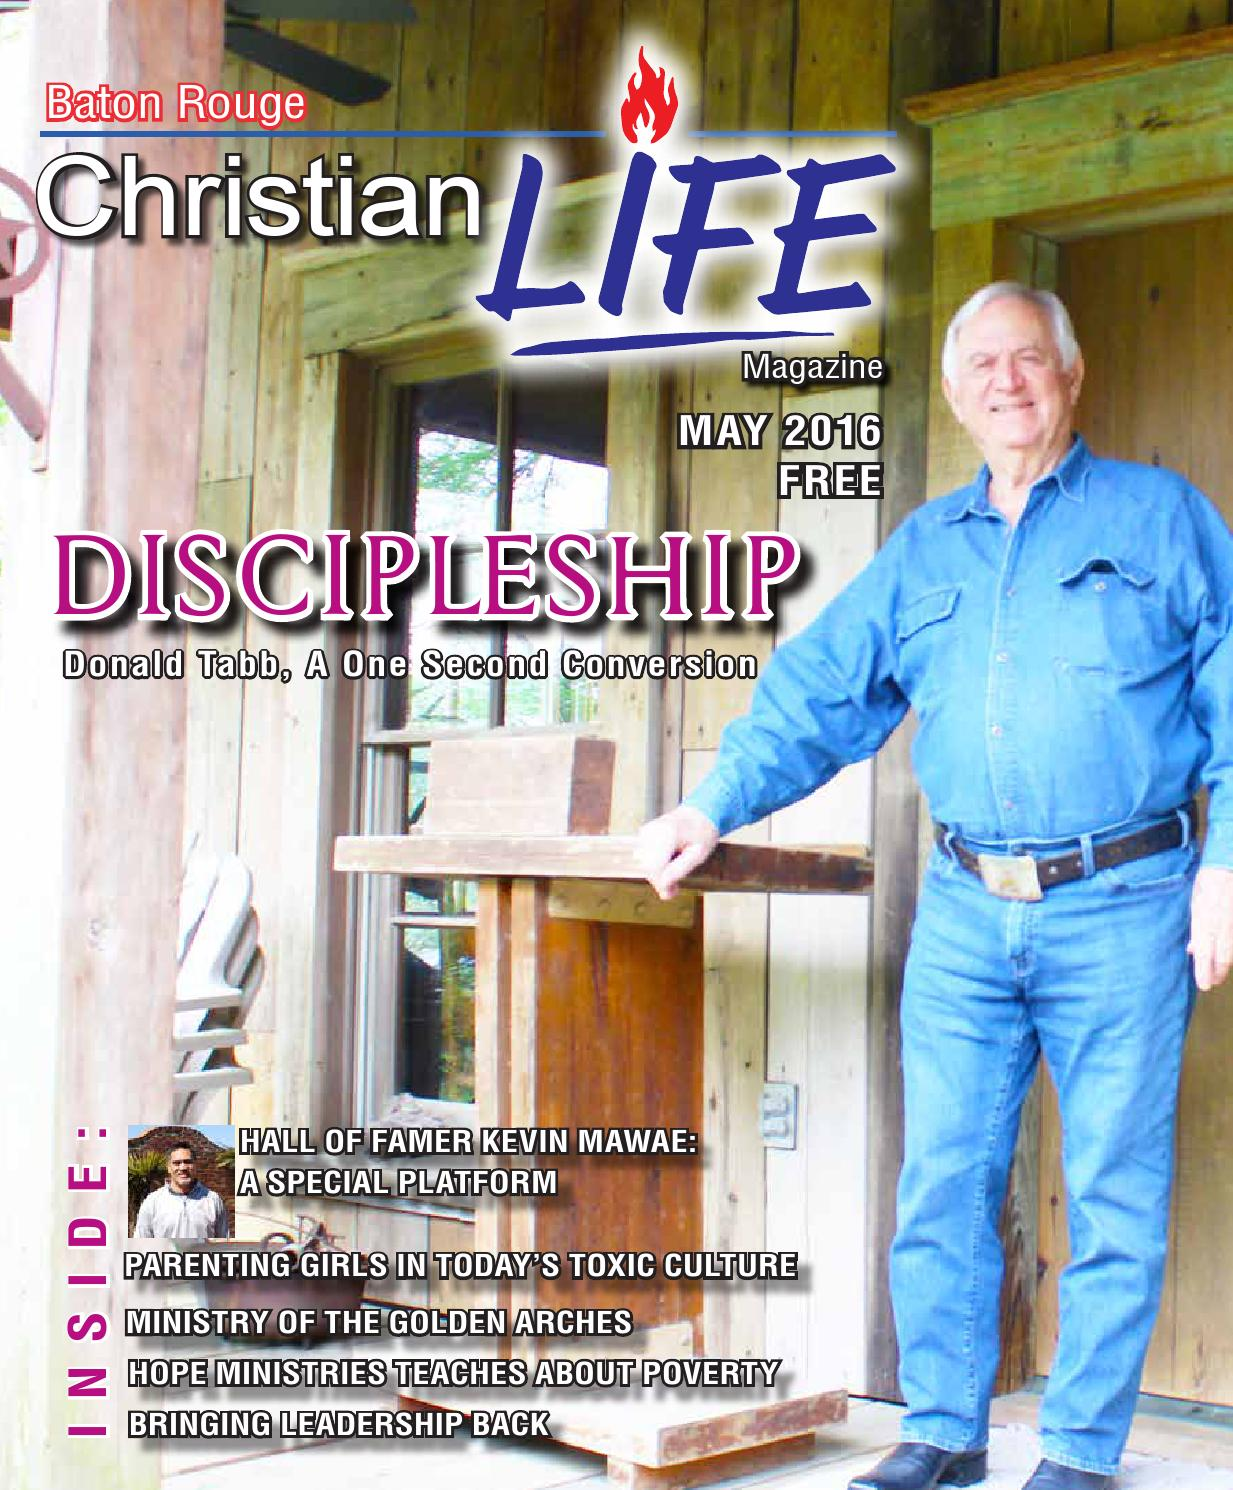 Baton Rouge Christian Life Magazine May 2016 Edition By Rodeo Bottom Abigail Pants Navy L Issuu